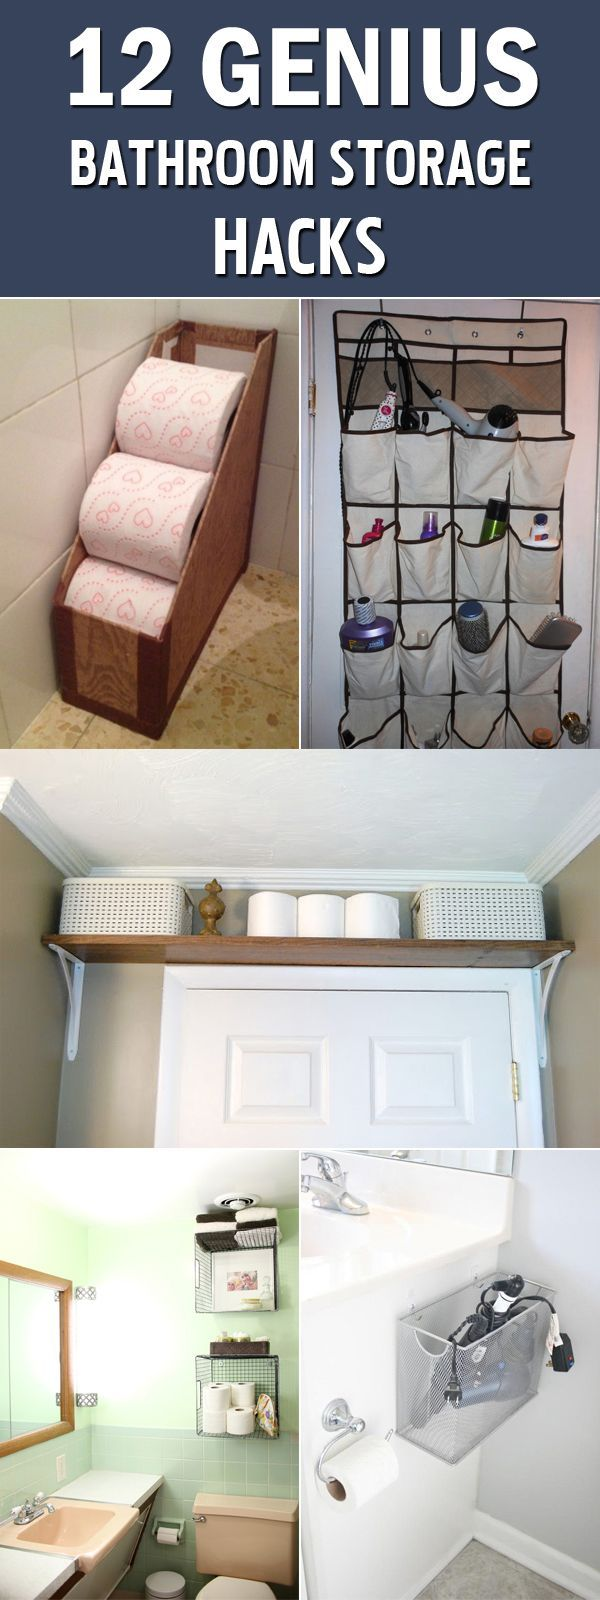 Best 25+ Basket Bathroom Storage Ideas On Pinterest | Bathroom Storage, DIY  Storage And Diy Towel Baskets